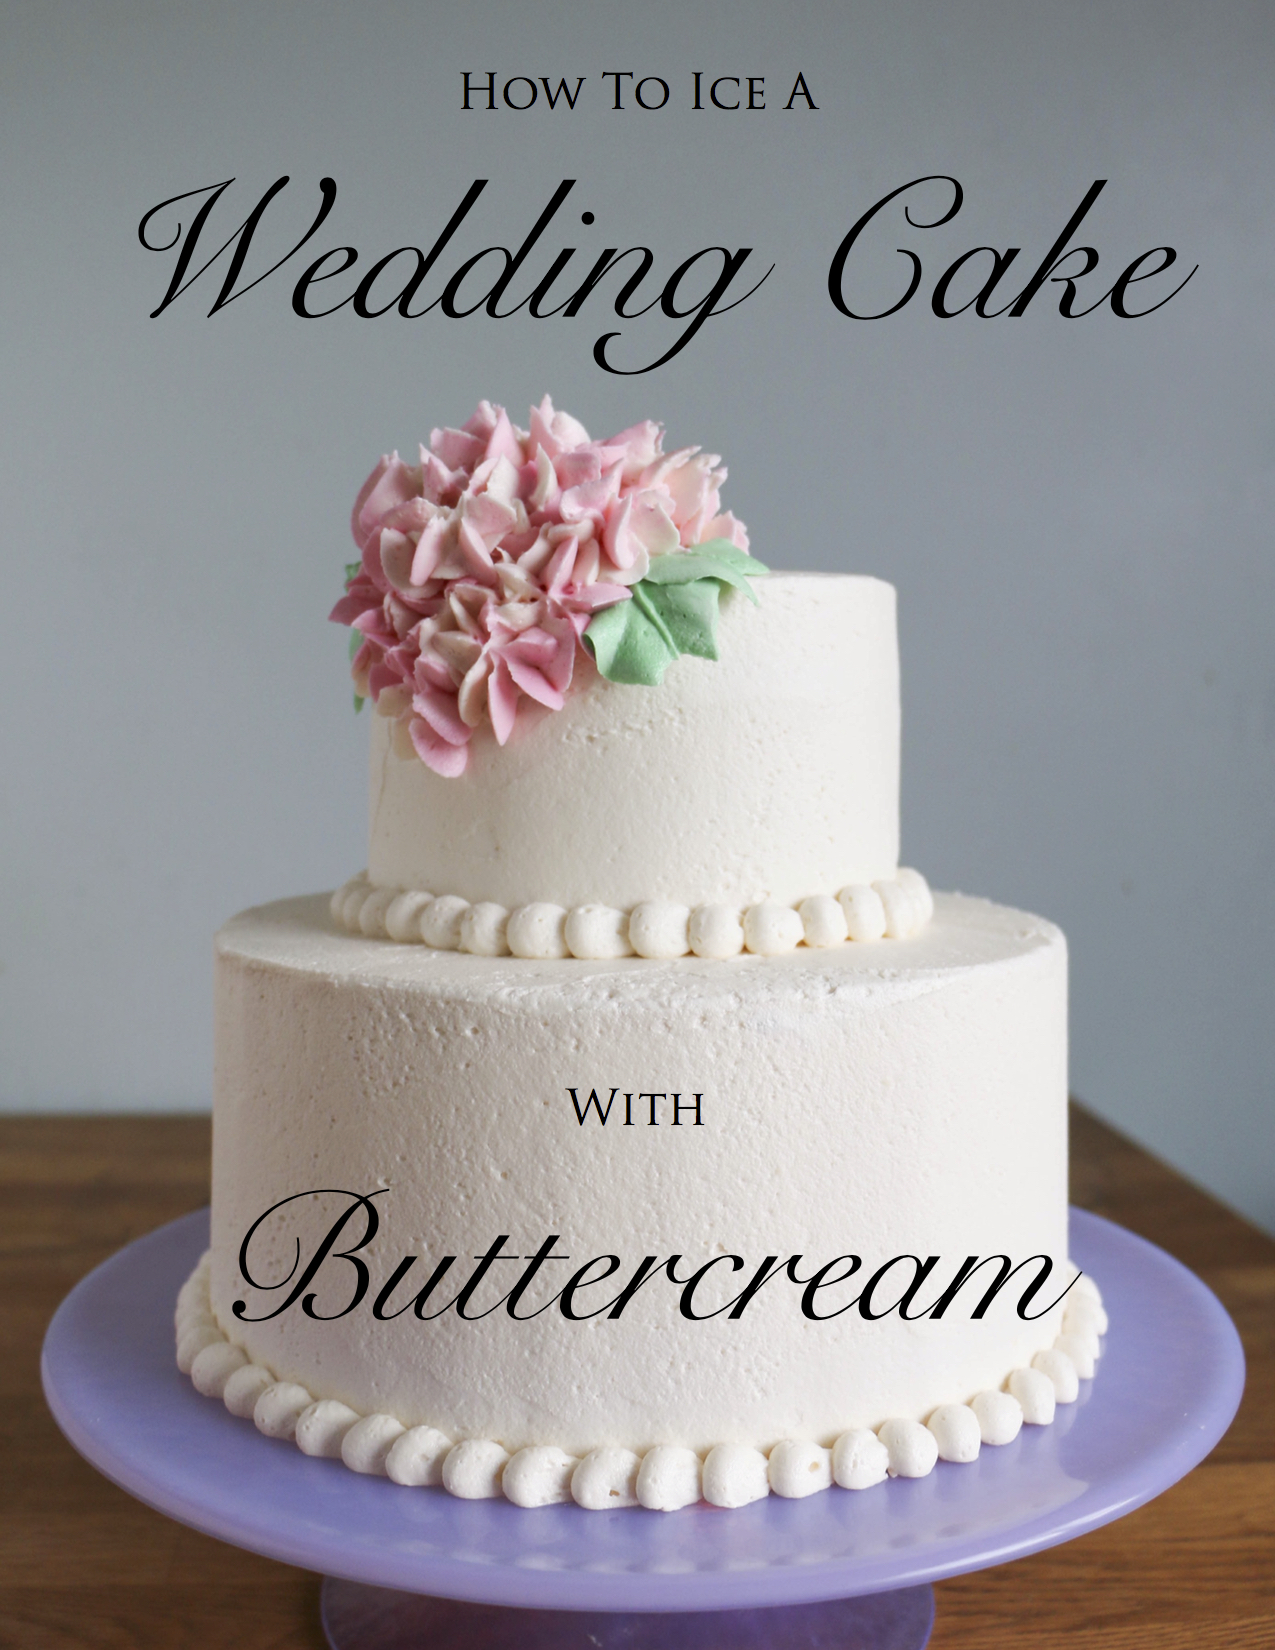 How to Ice a Wedding Cake with Buttercream | Erin Gardner